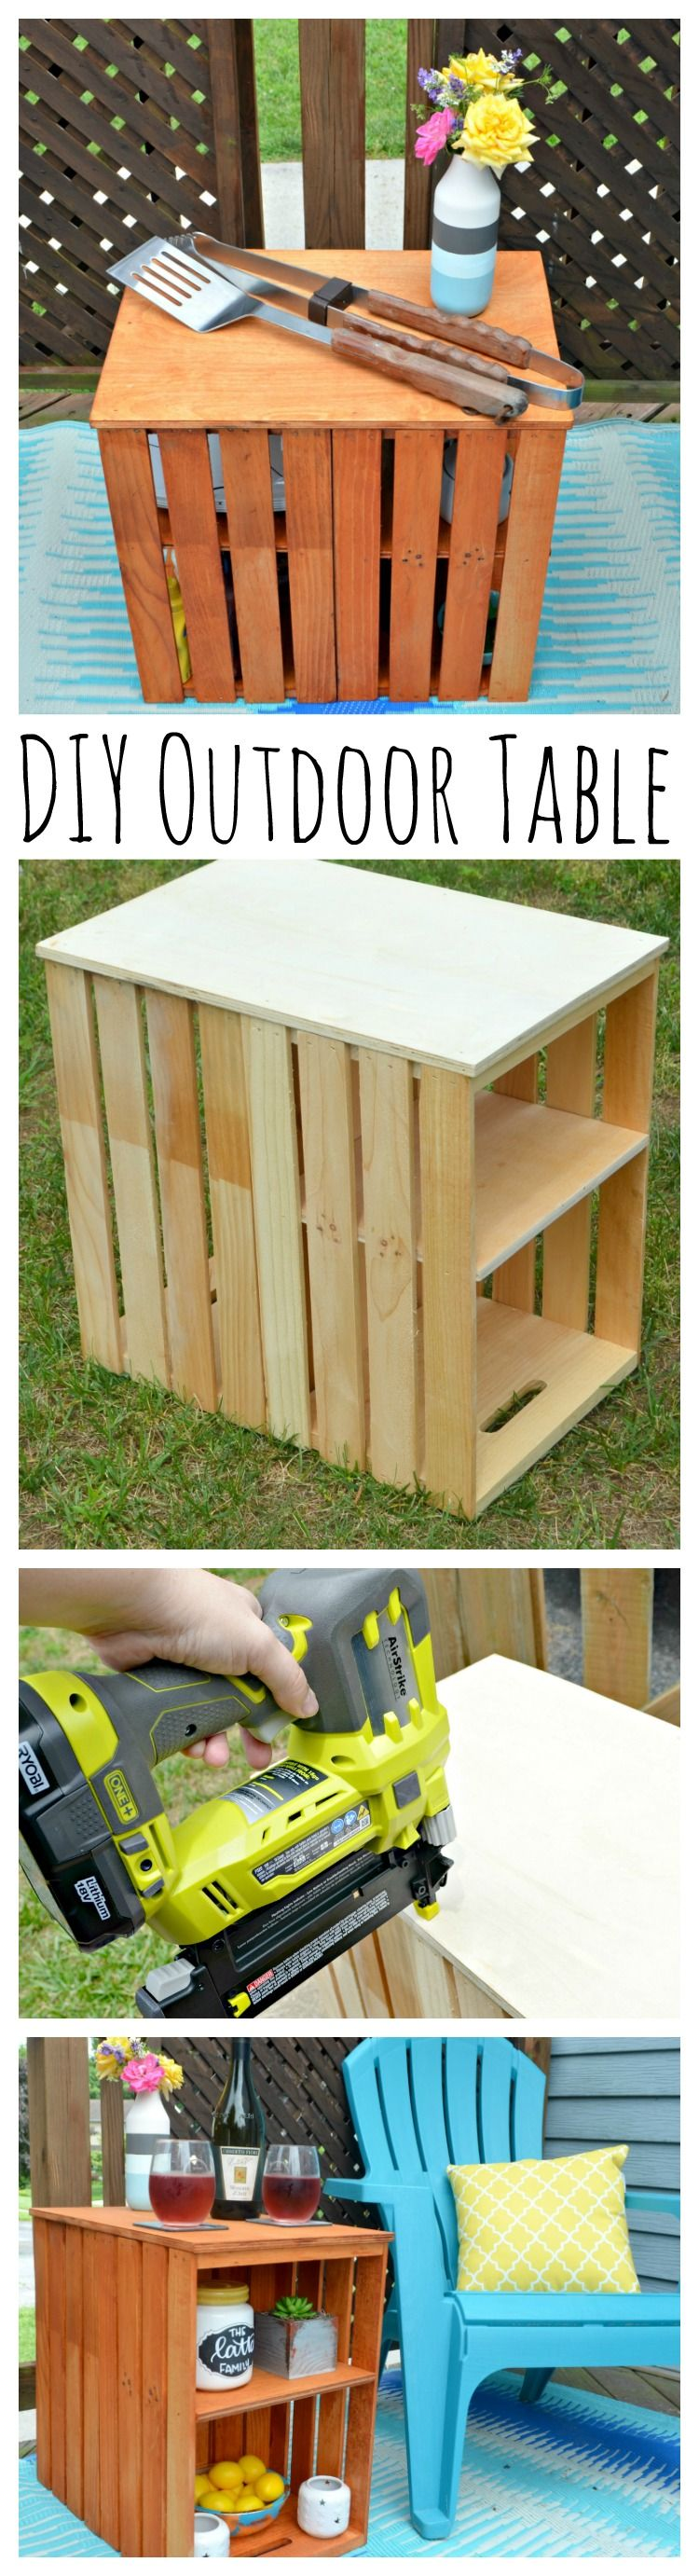 DIY Wooden Crate Outdoor Table | Diy projects patio, Crate ...